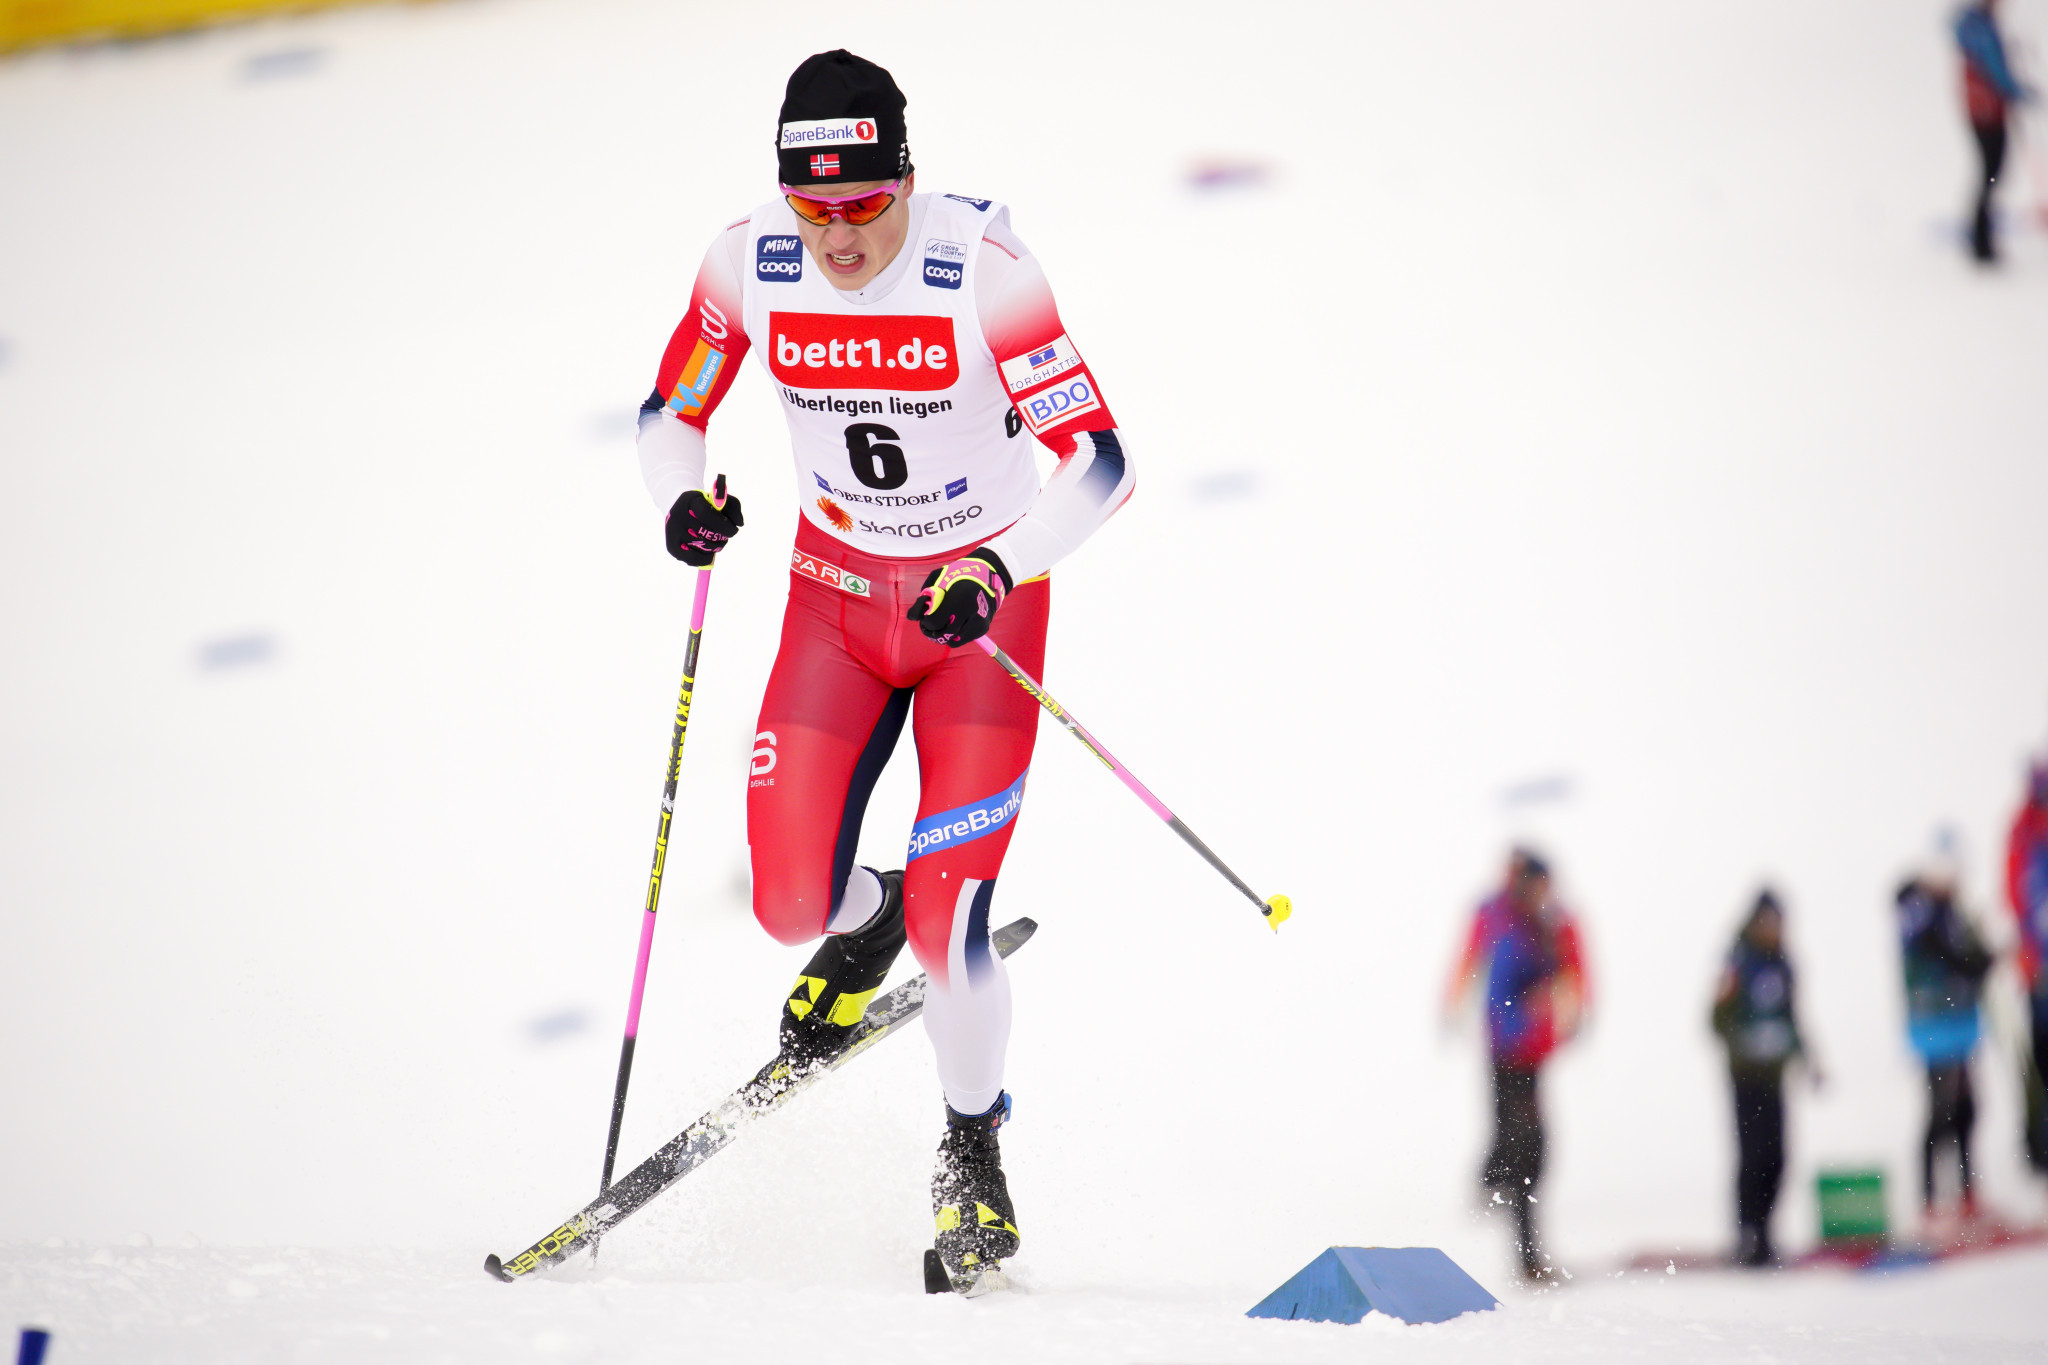 Johannes Høsflot Klæbo of Norway is considered the favourite in the men's sprint race at the FIS Cross-Country World Cup ©Getty Images